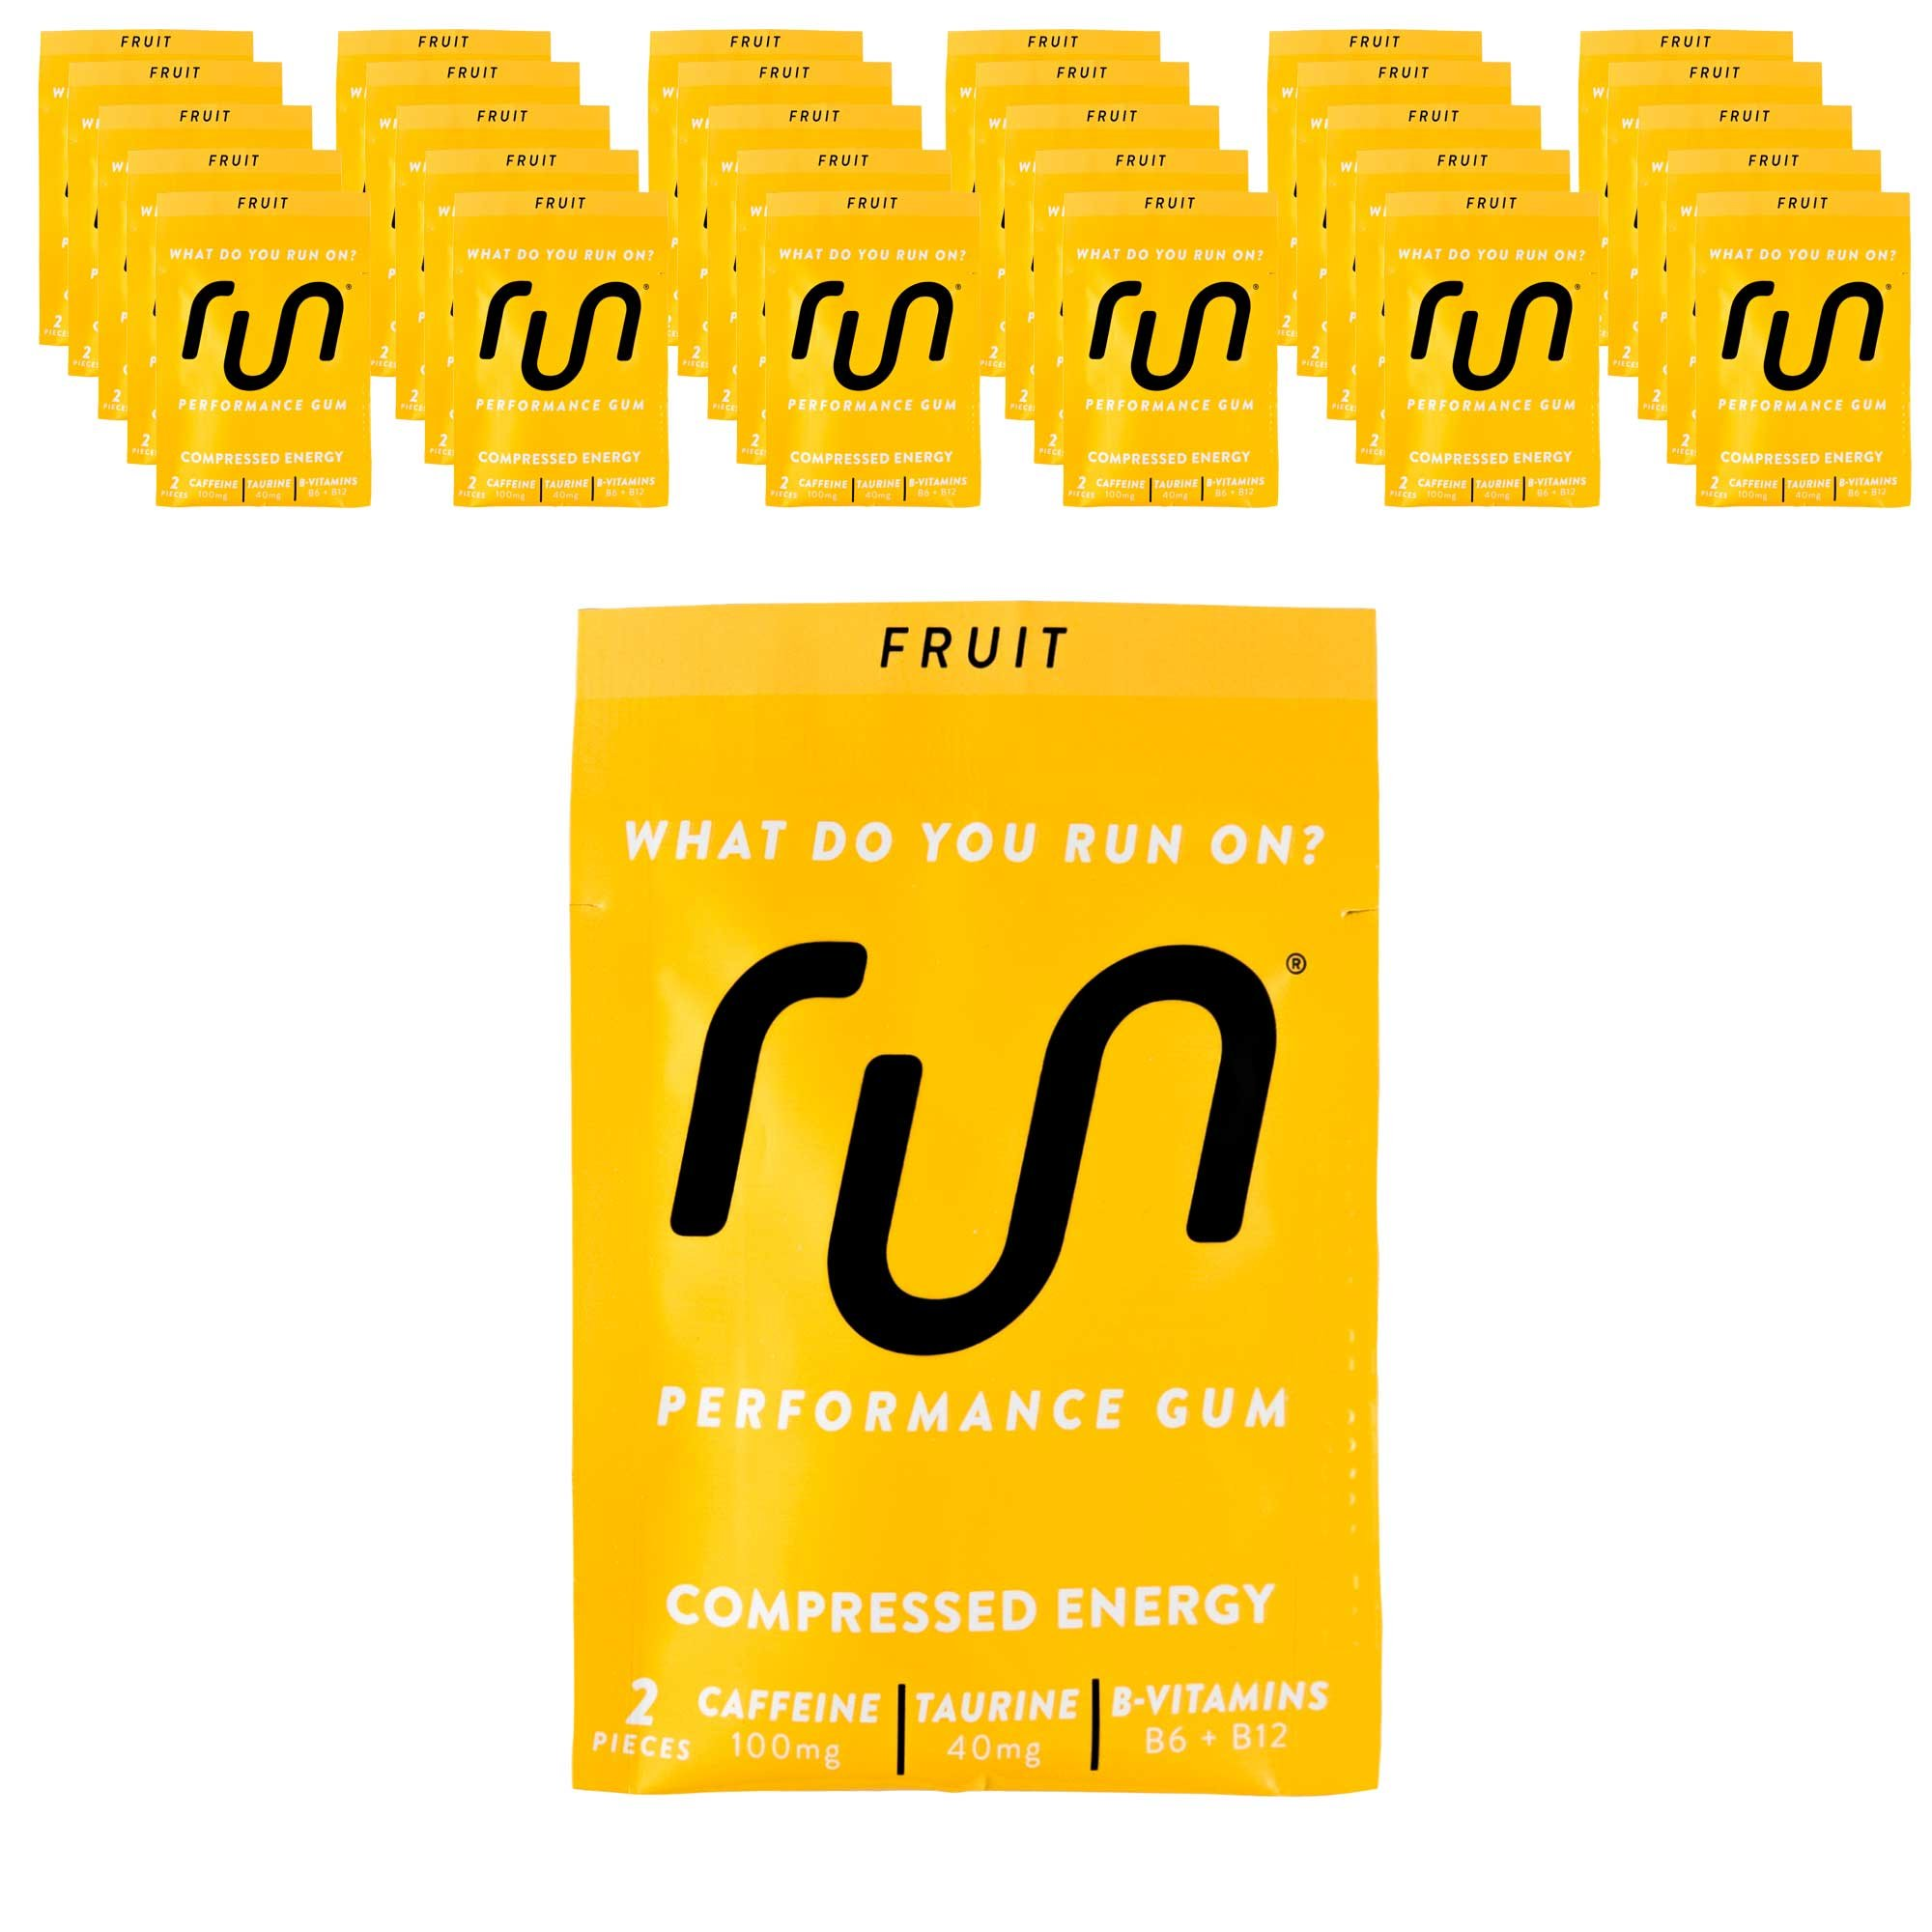 RUN GUM Fruit Energy Gum 50mg Caffeine Taurine & B-Vitamins (30pk), 2 Pieces = 1 coffee/Energy drink, Quick Energy Boost